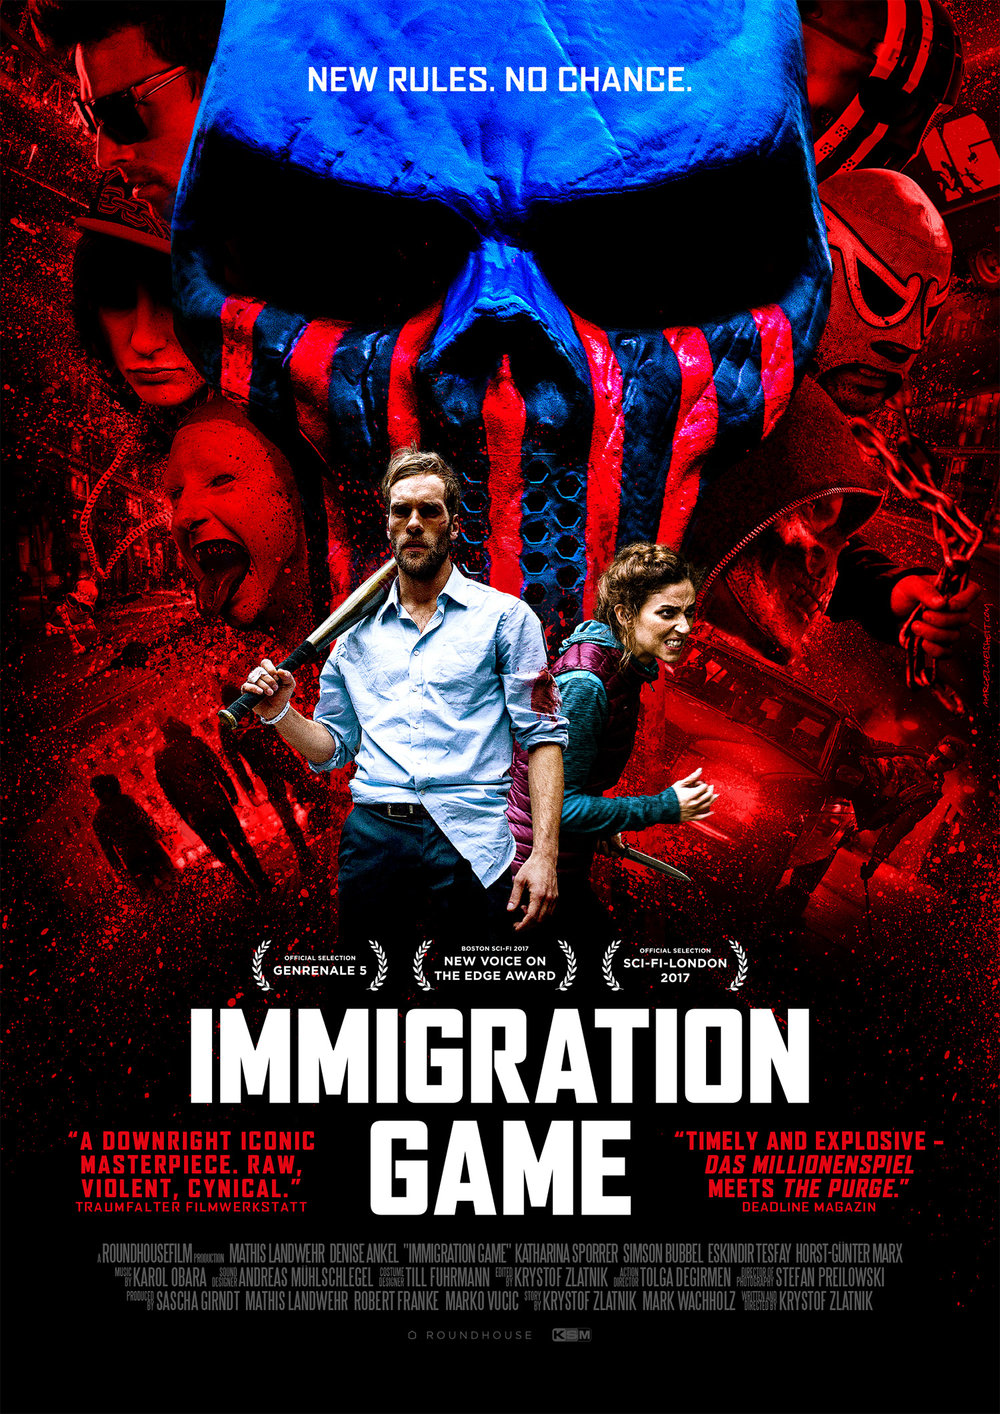 immigration-game_teaser-poster.jpg